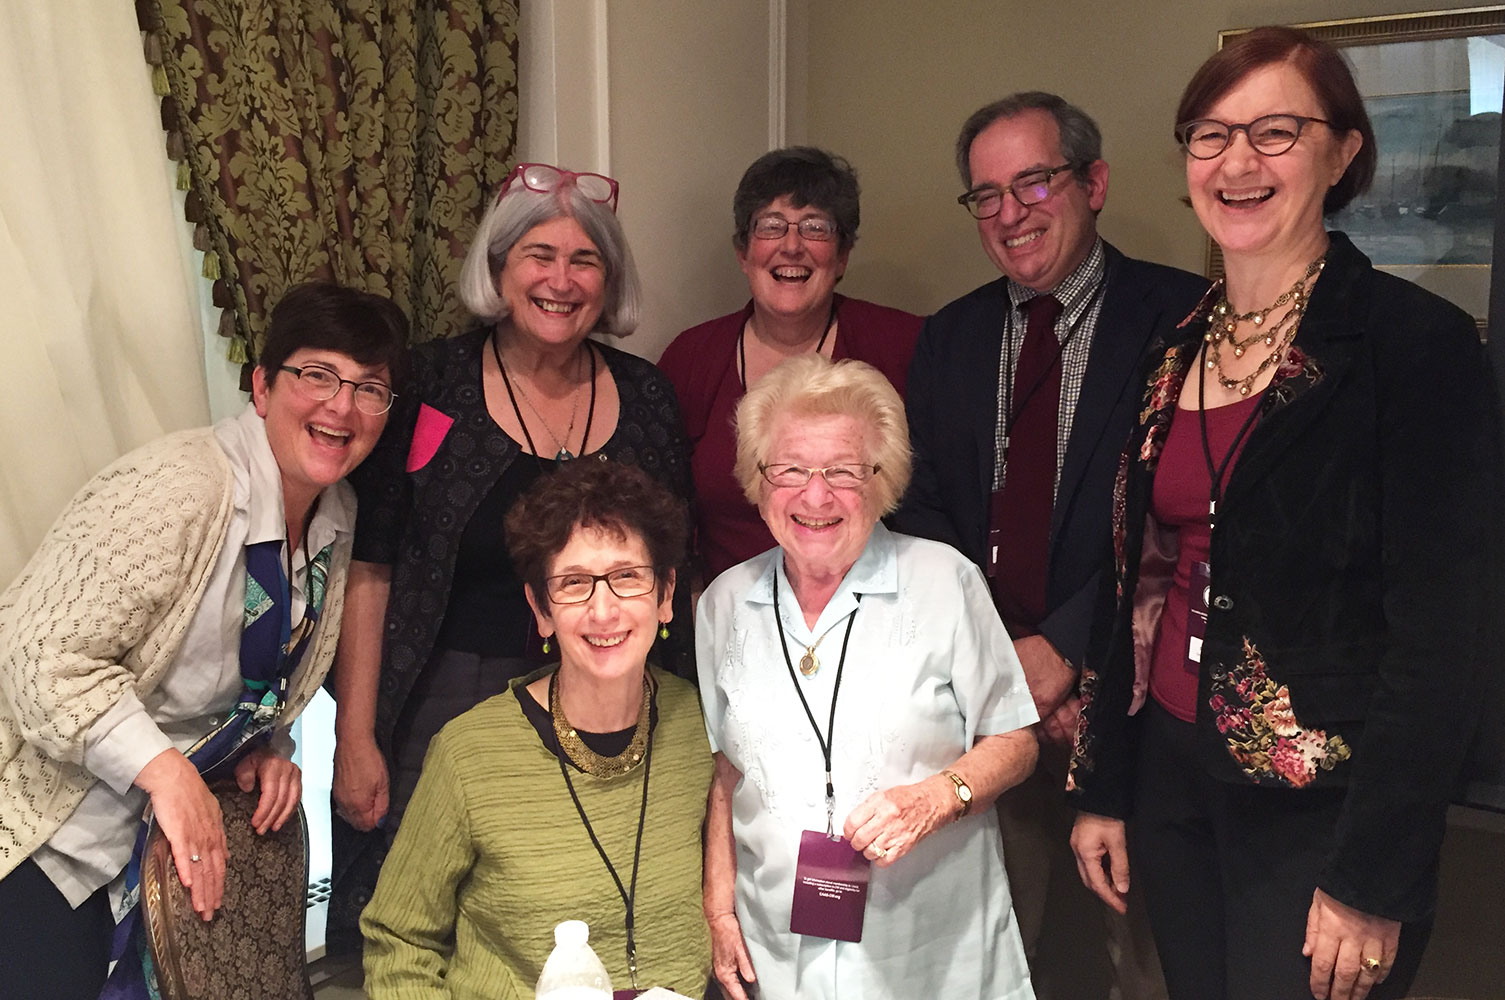 Professor Rabinowitz and Ruth Westheimer (Dr. Ruth), front, with CAAS panel members.